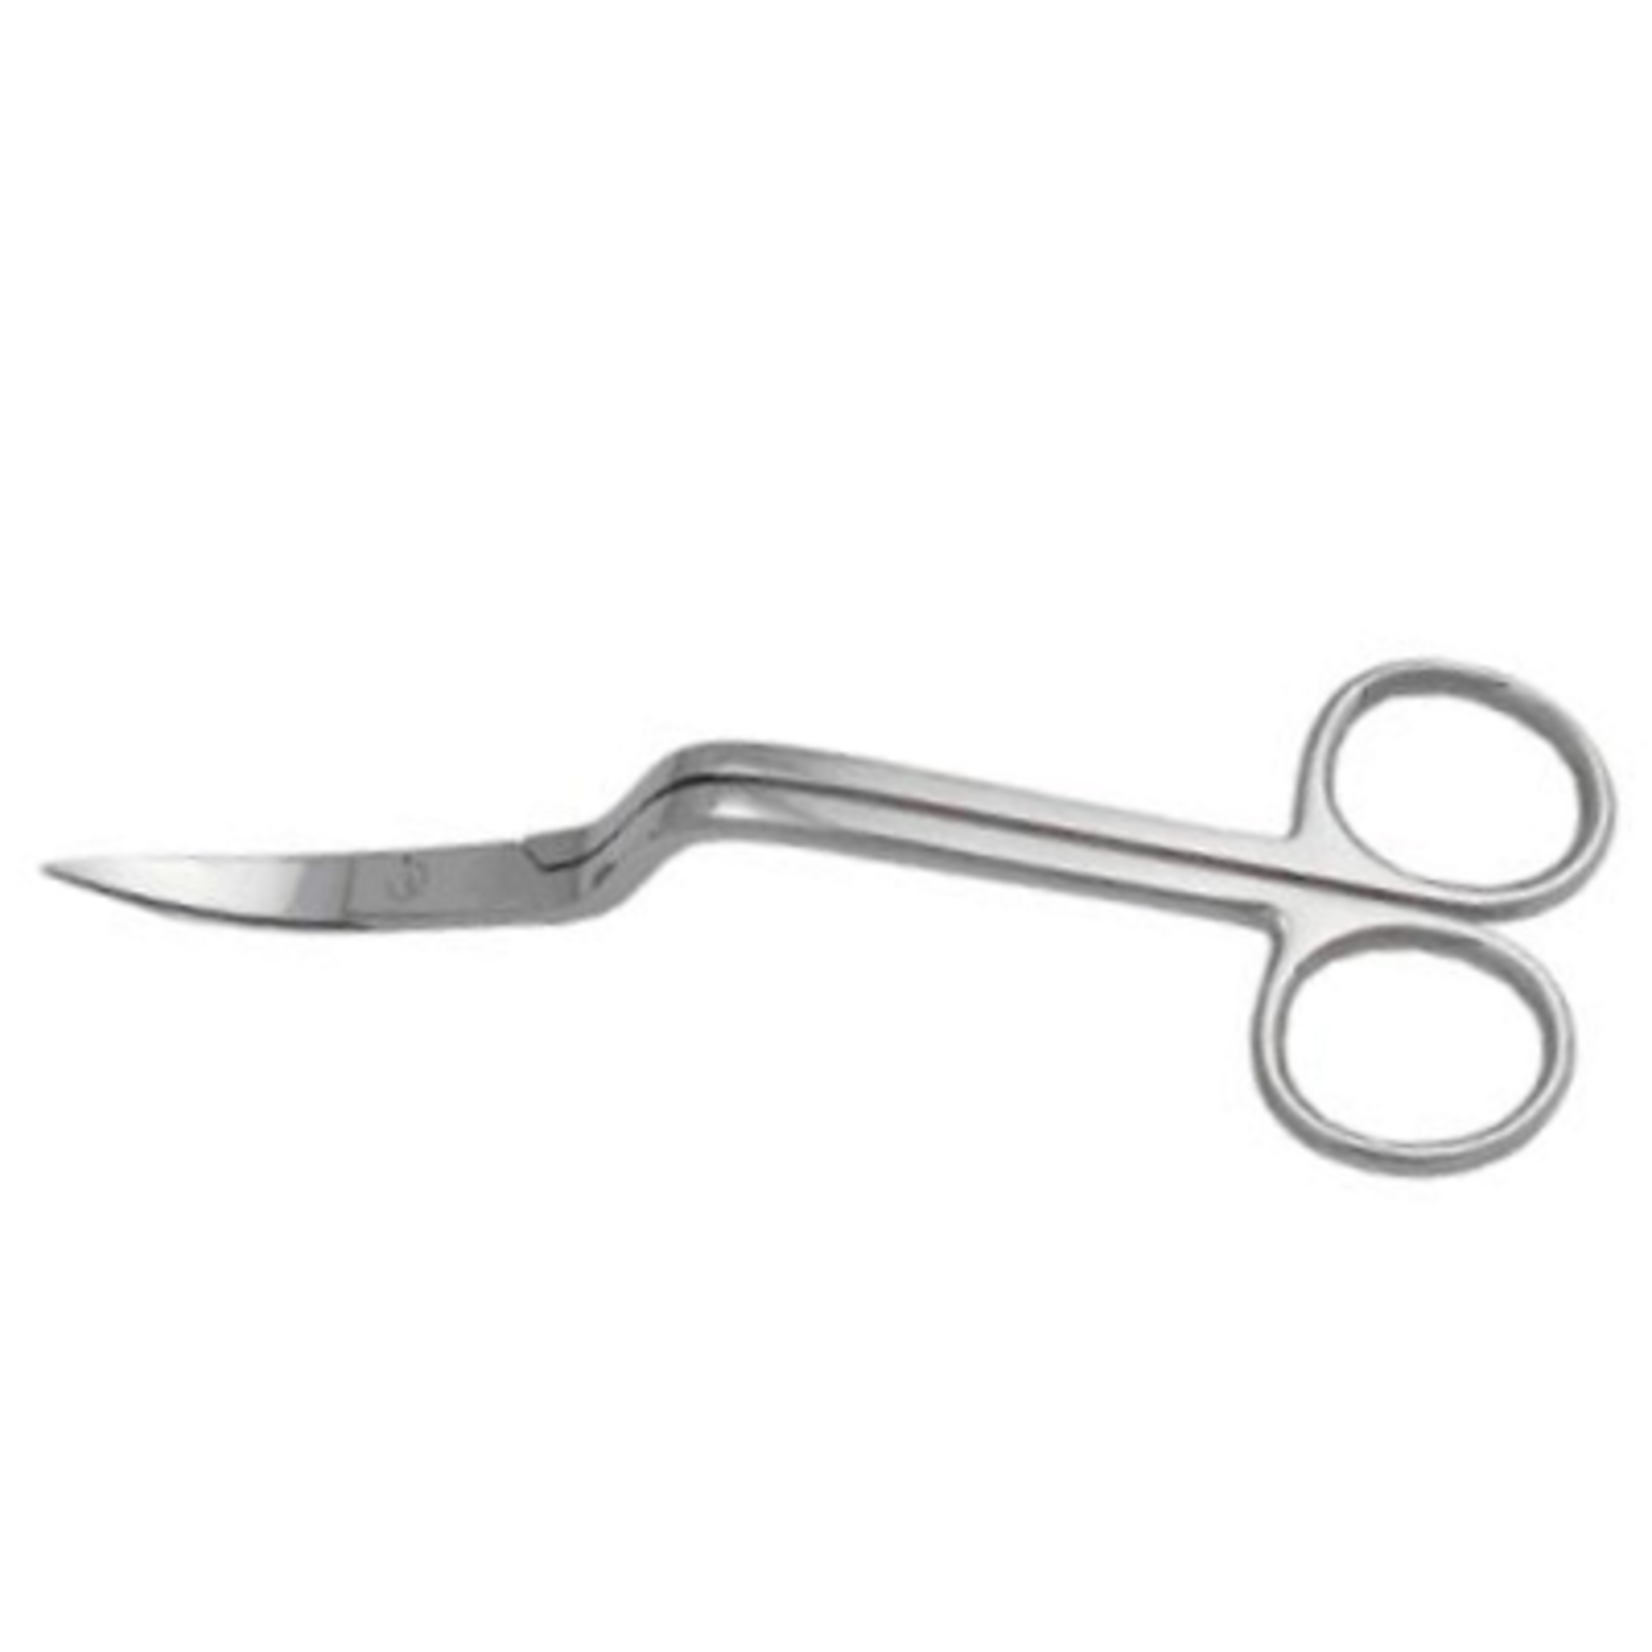 """DOUBLE CURVED 6.5"""" EMBROIDERY SCISSORS"""